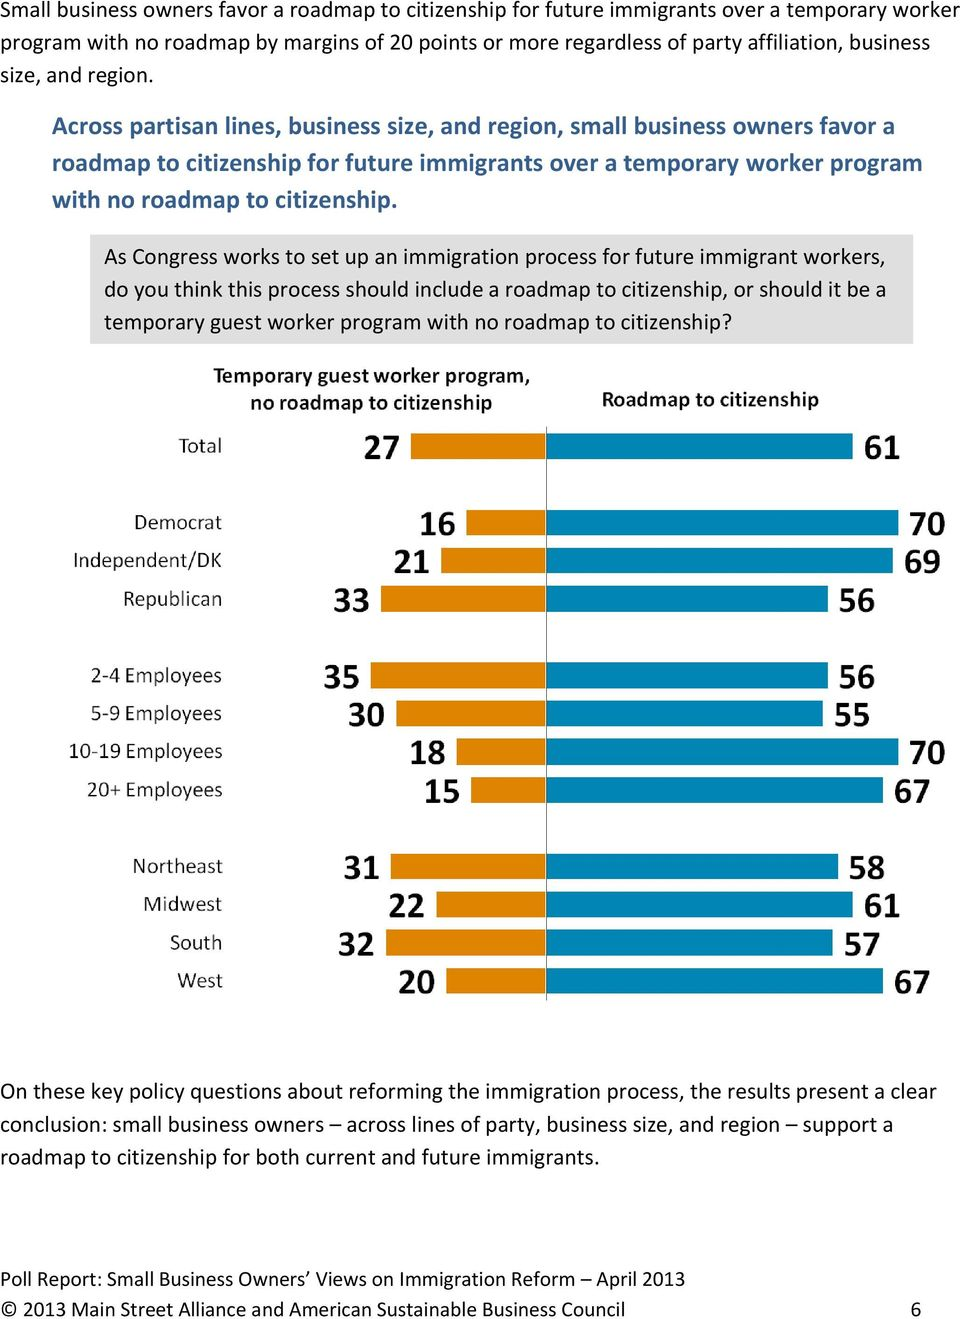 Across partisan lines, business size, and region, small business owners favor a roadmap to citizenship for future immigrants over a temporary worker program with no roadmap to citizenship.